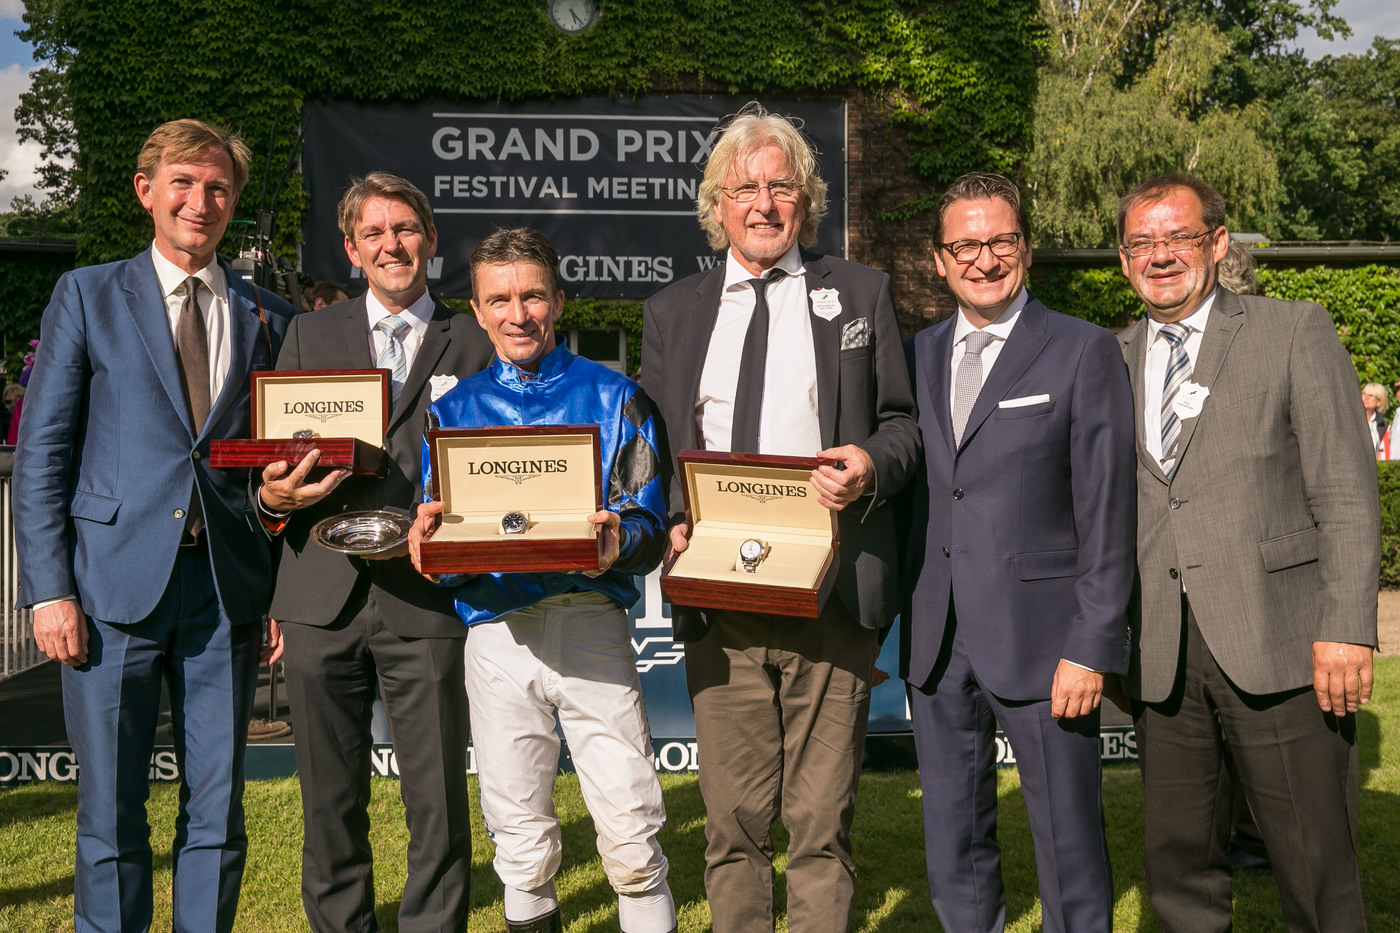 Longines Flat Racing Event: Longines launched its new second screen application during the Longines Grosser Preis von Berlin won by Adrie de Vries riding Dschingis Secret 4